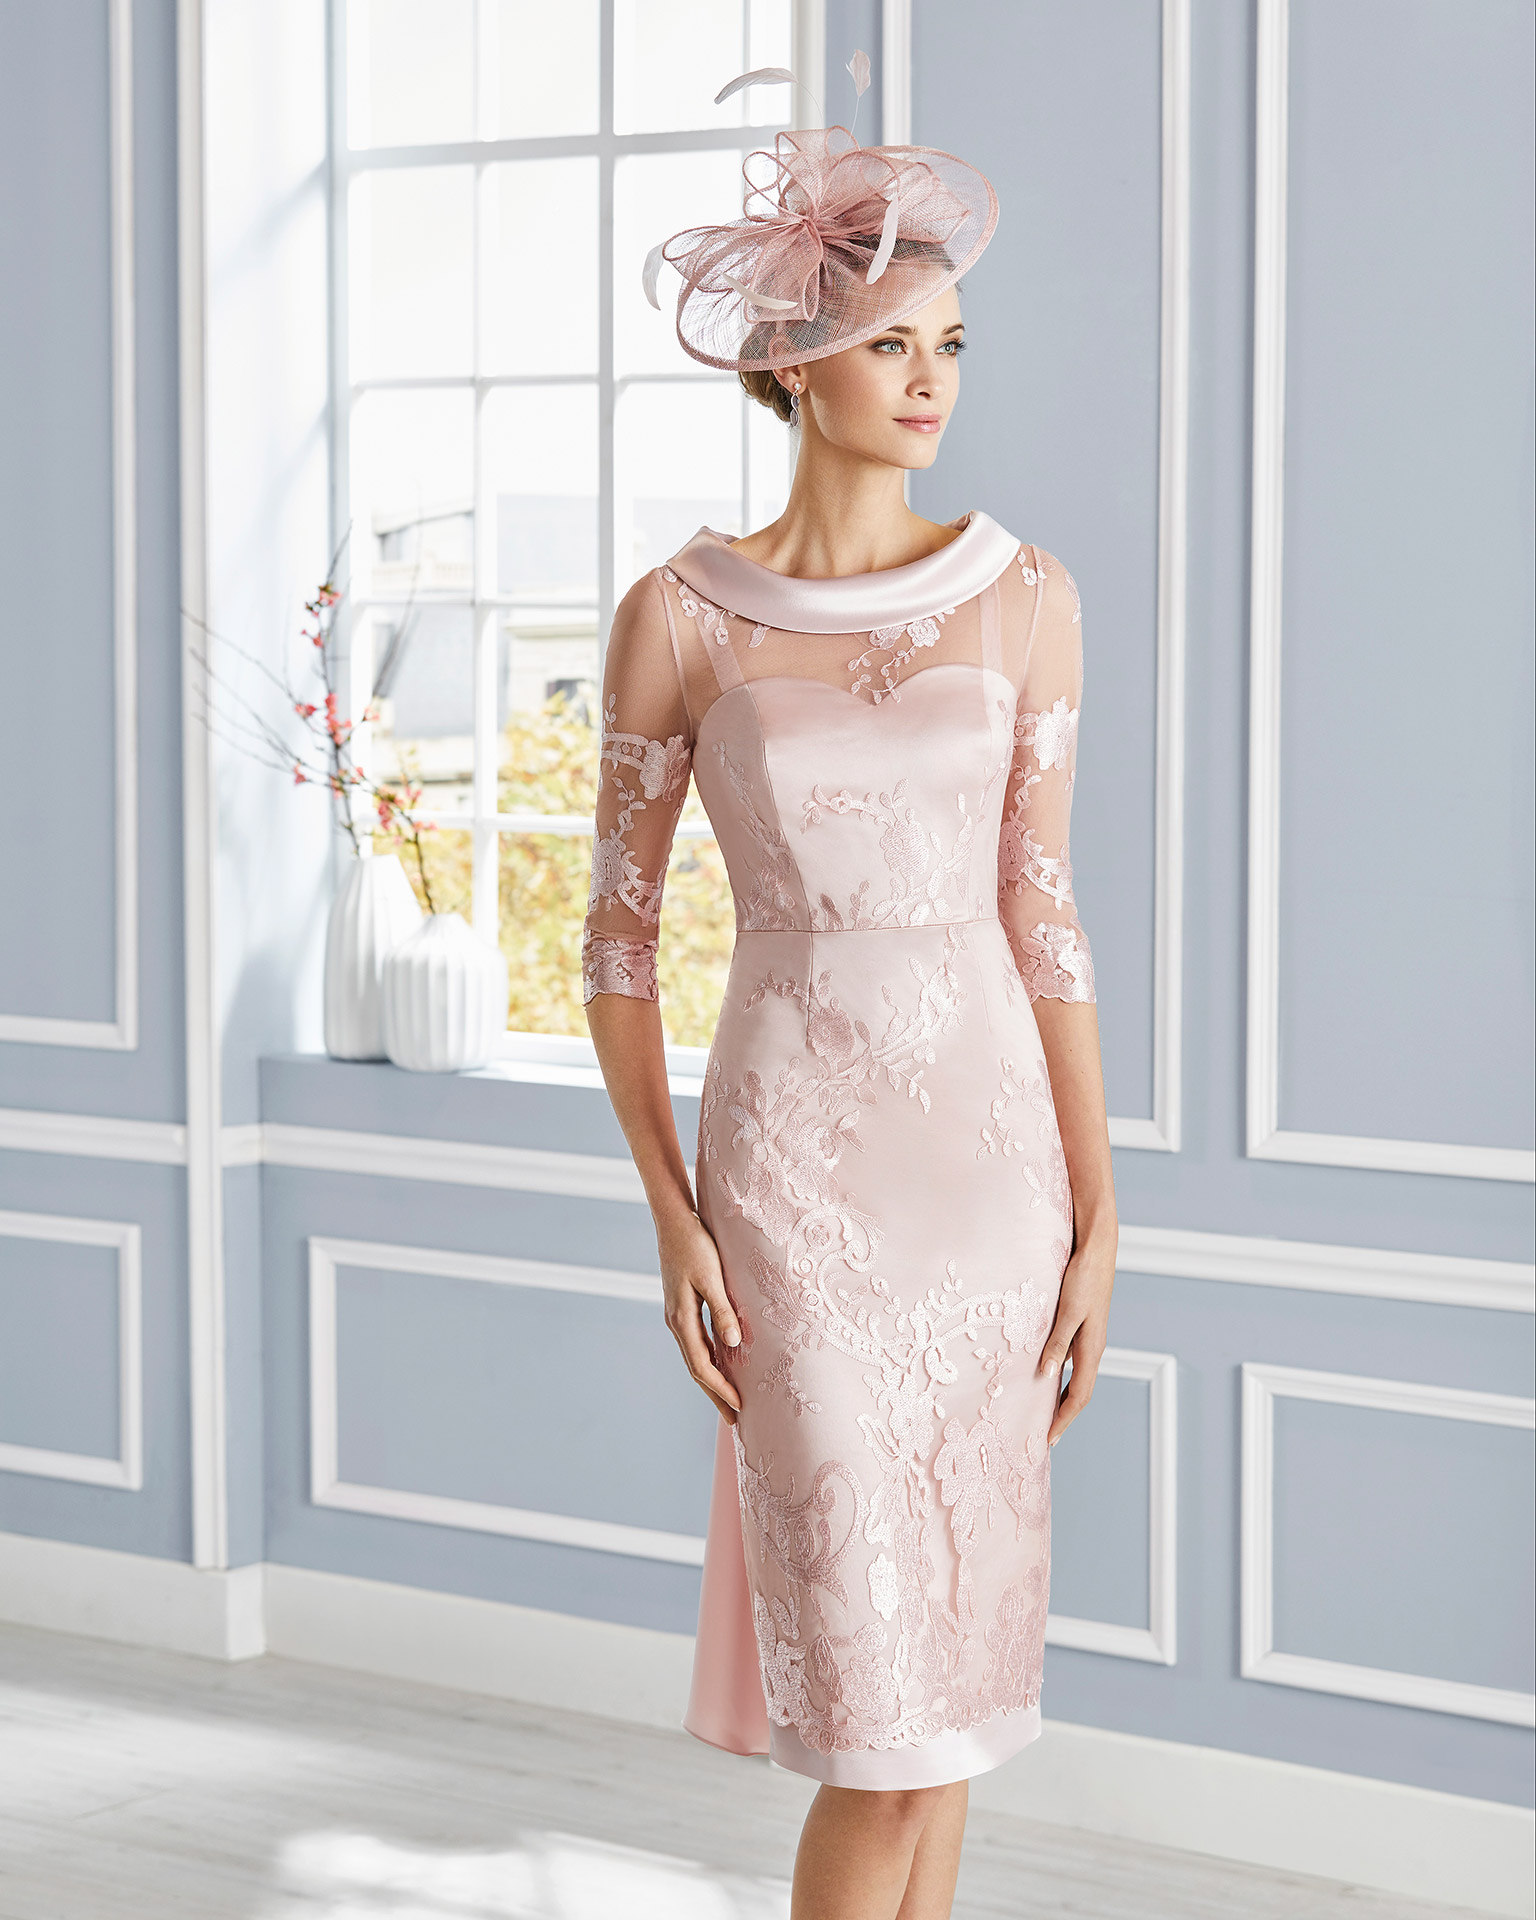 Short lace cocktail dress. Round neckline with three-quarter sleeves. Bow at the back. 2020 COUTURE CLUB Collection.